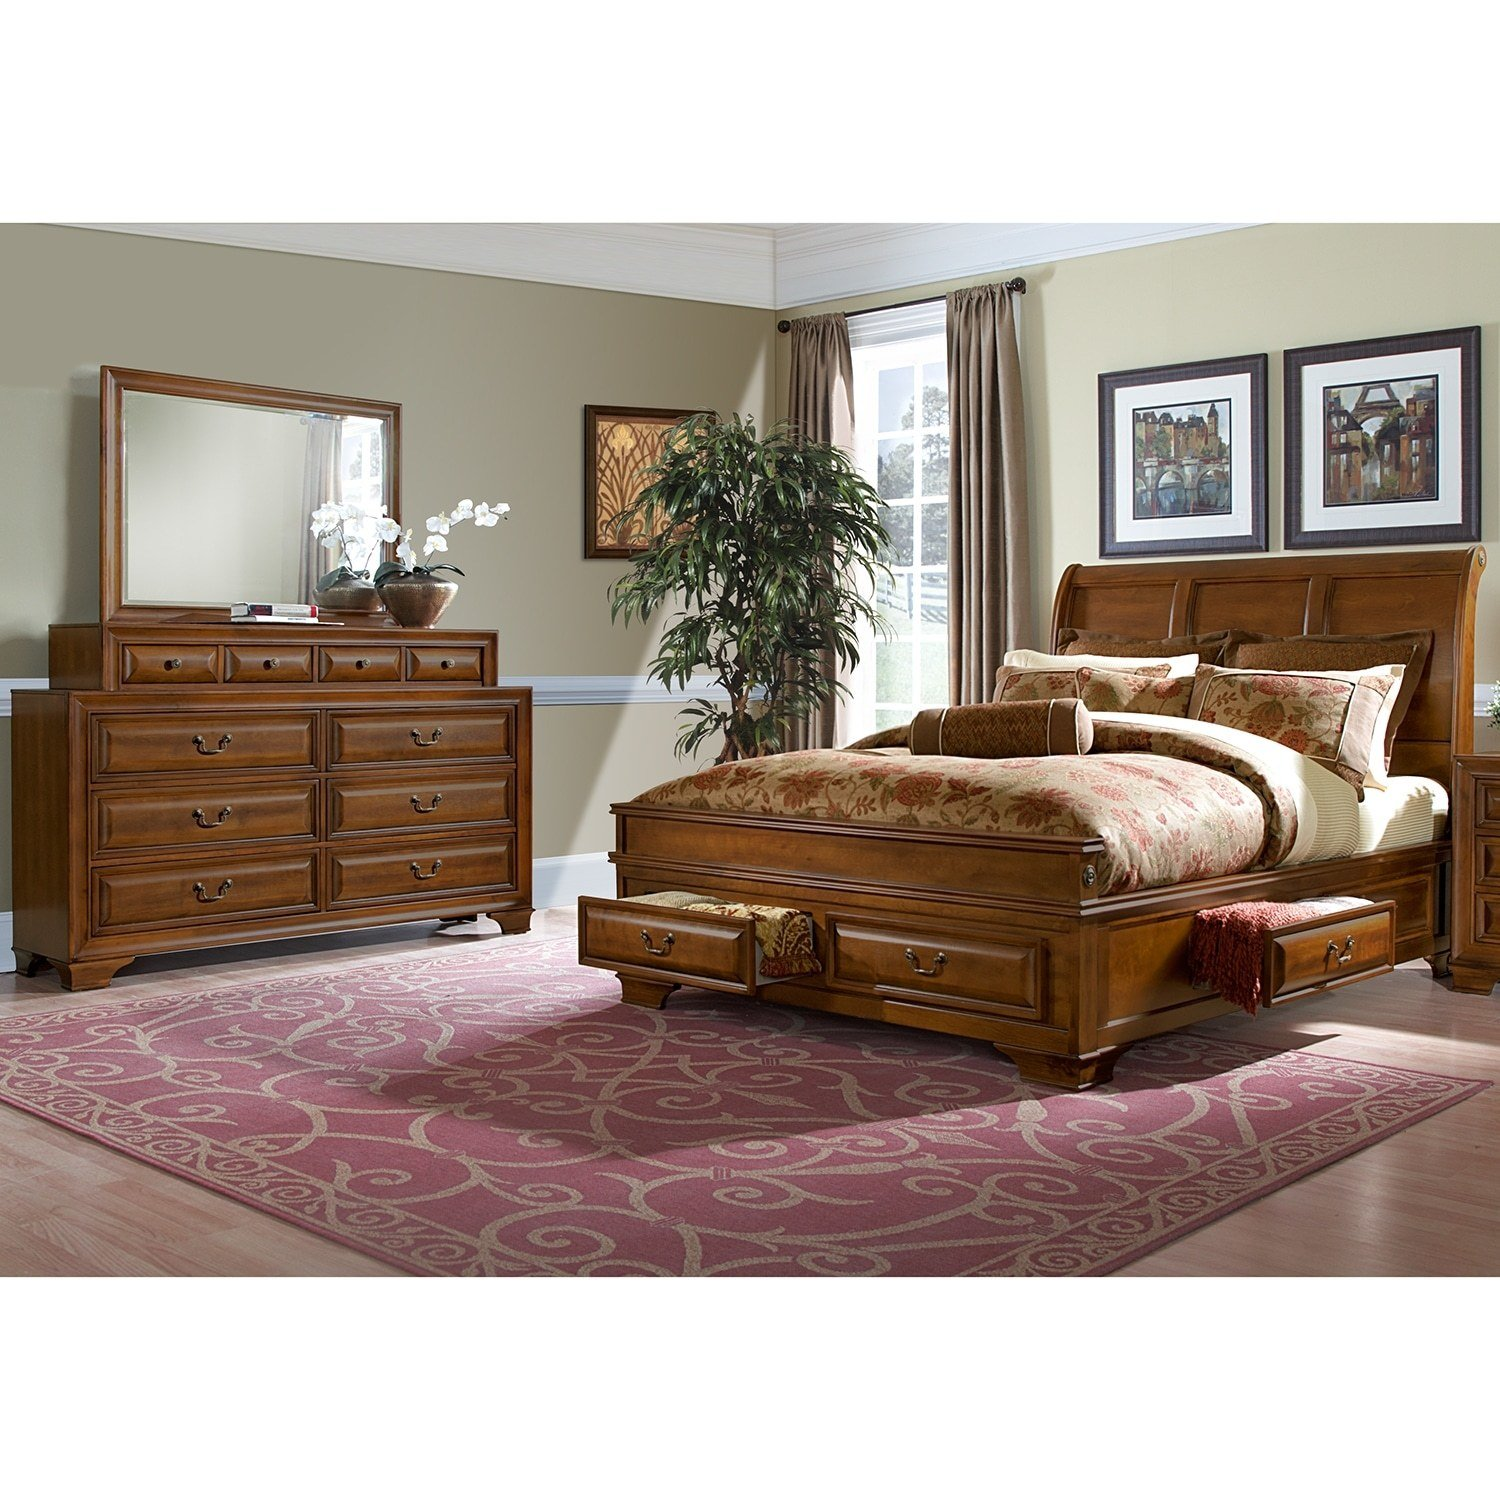 Best Sanibelle 5 Piece King Storage Bedroom Set Pine Value With Pictures